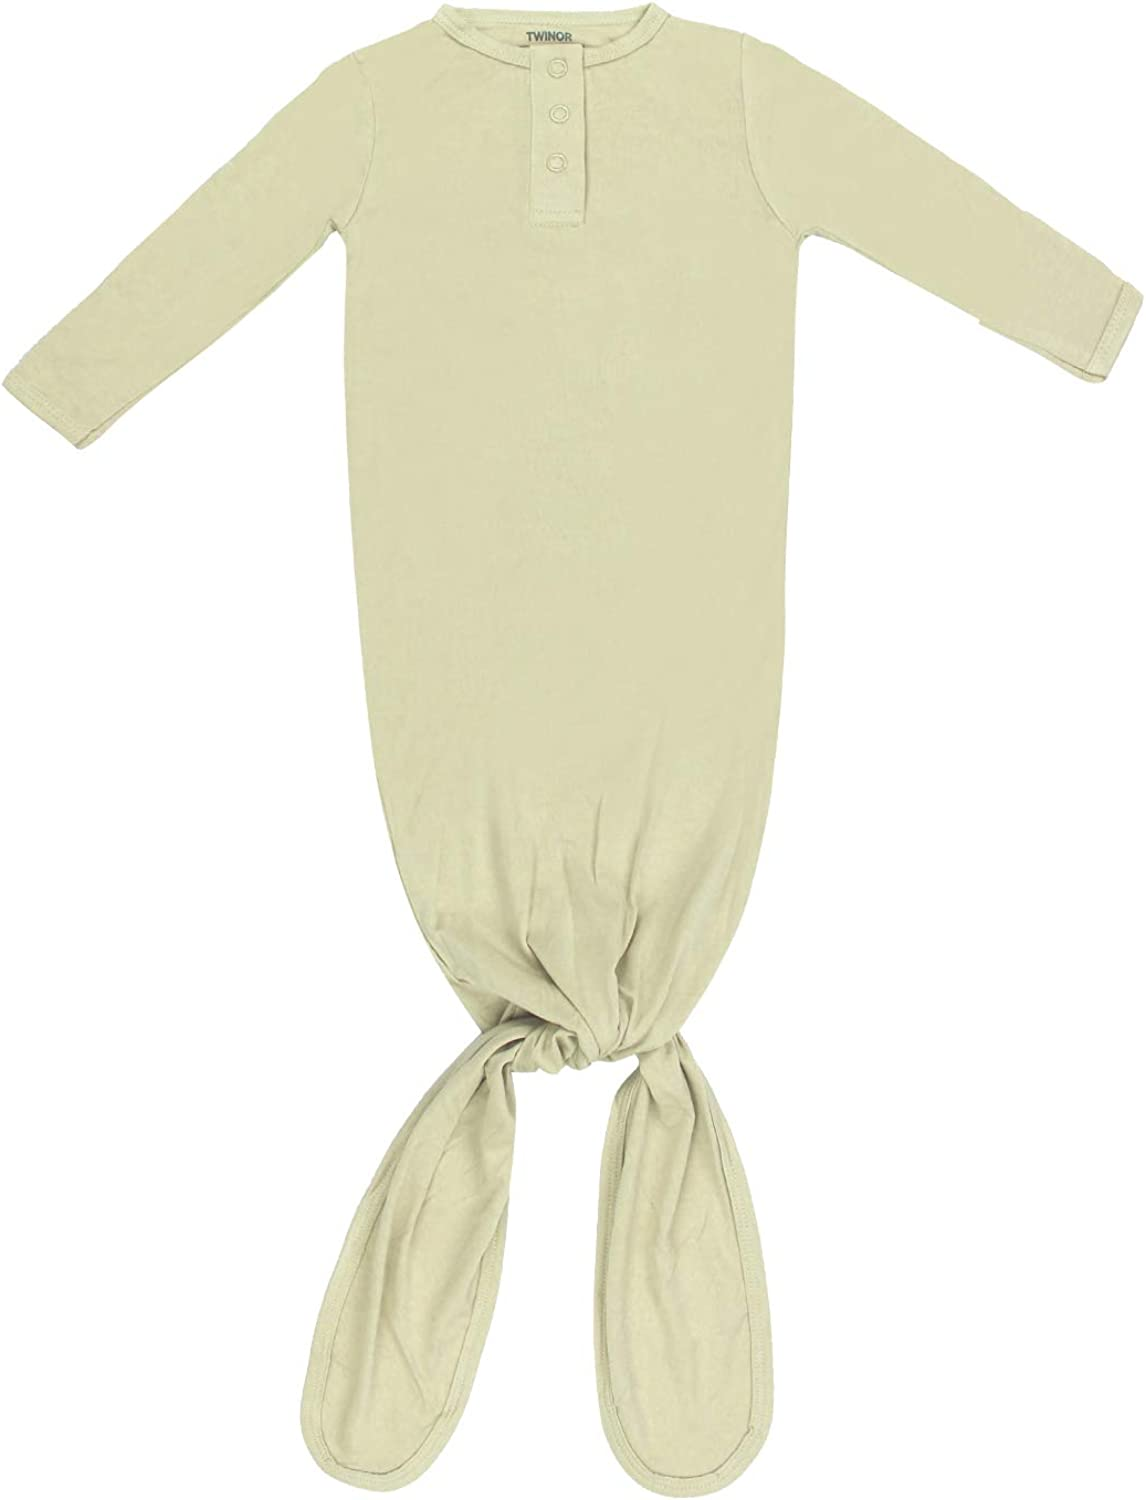 TWINOR Knotted Baby Gown Long Sleeve Baby Sleeping Bags Super Soft Bamboo Nightgowns